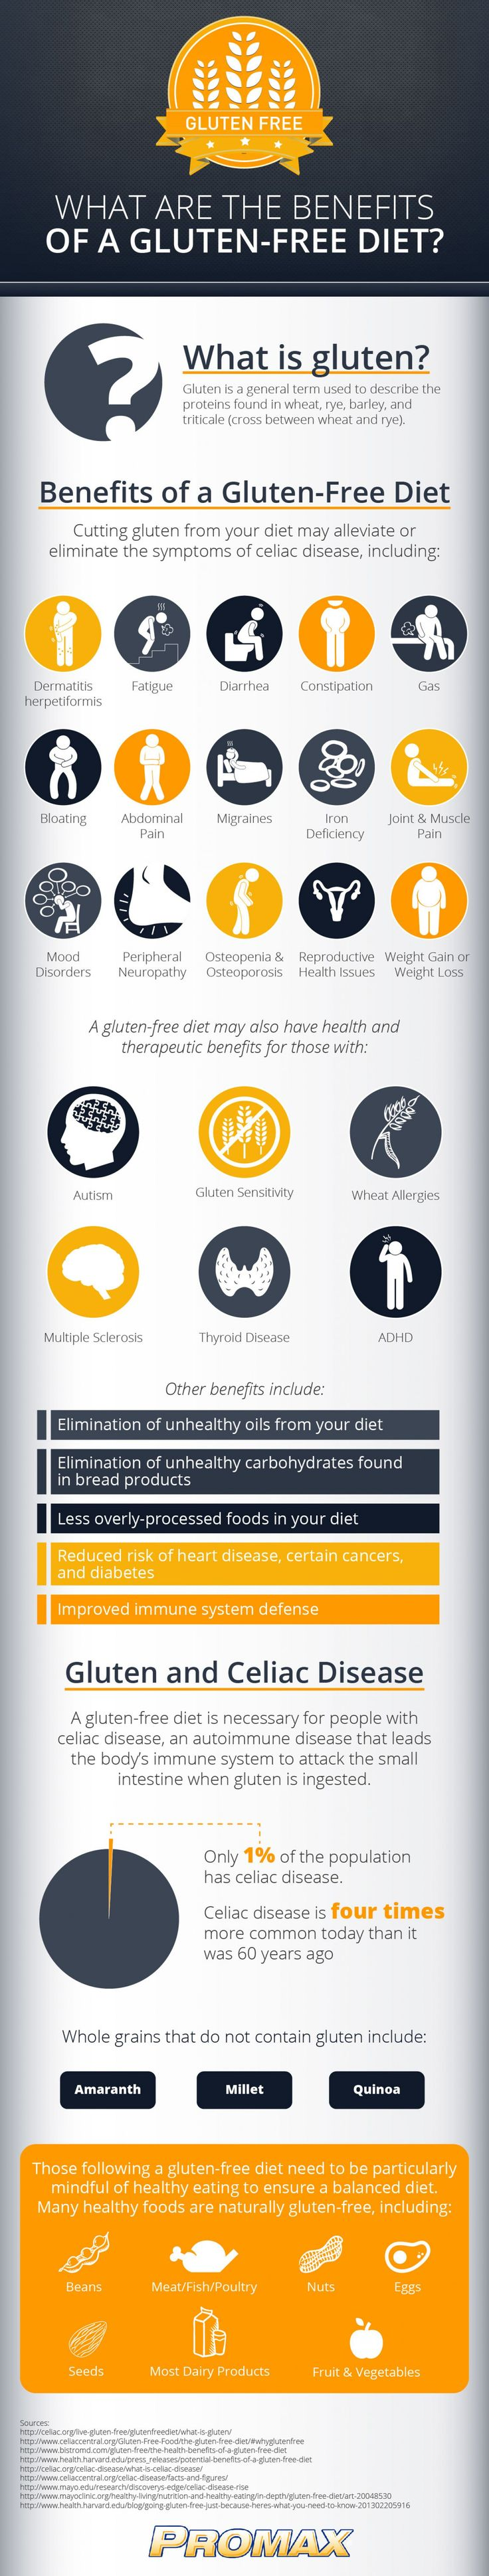 What Are the Benefits of a Gluten-Free Diet?  Thyroid disease, wheat allergy, adhd, and auto immune disorders.... makes you think.